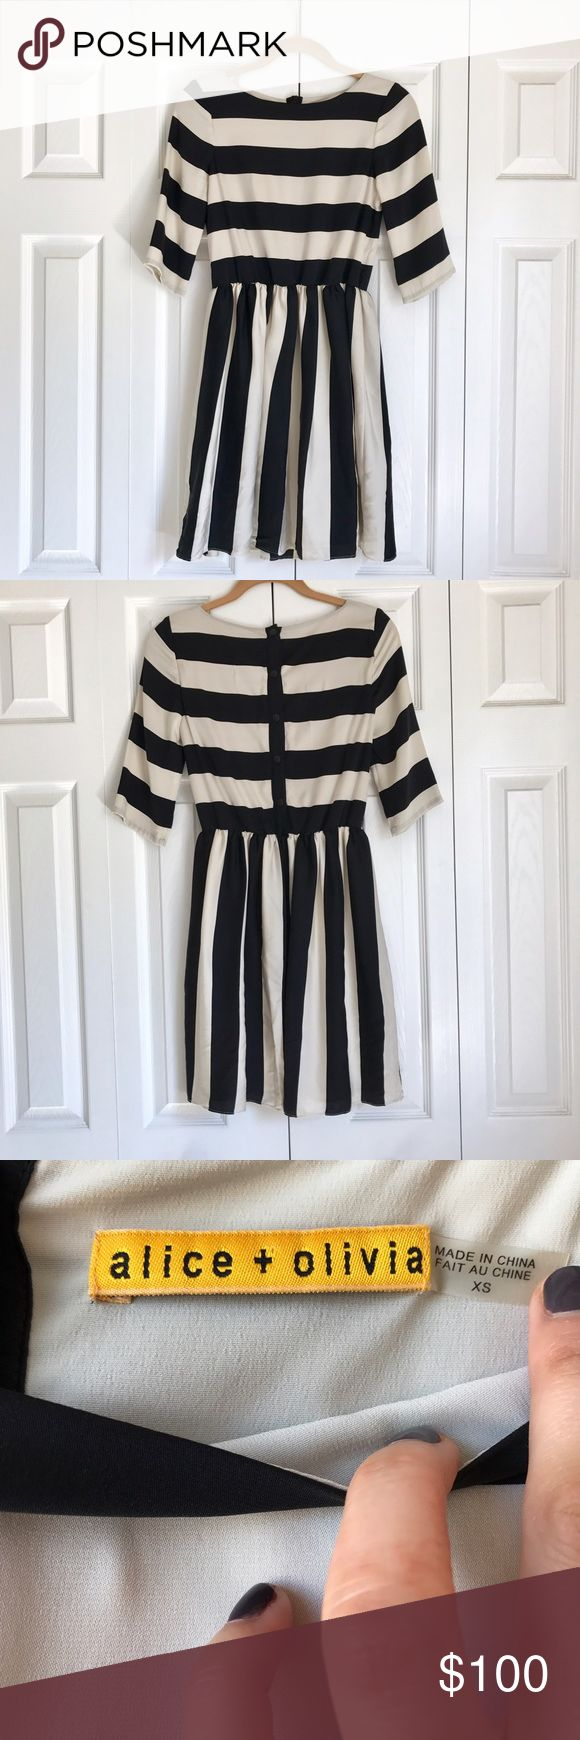 Alice + Olivia black and white dress Alice + Olivia black and white striped dress with button up back. Beautiful dress for any occasion, formal or casual. Missing the sash for around the waist but still looks amazing without it. Looks great with black stockings and black pumps. Alice + Olivia Dresses